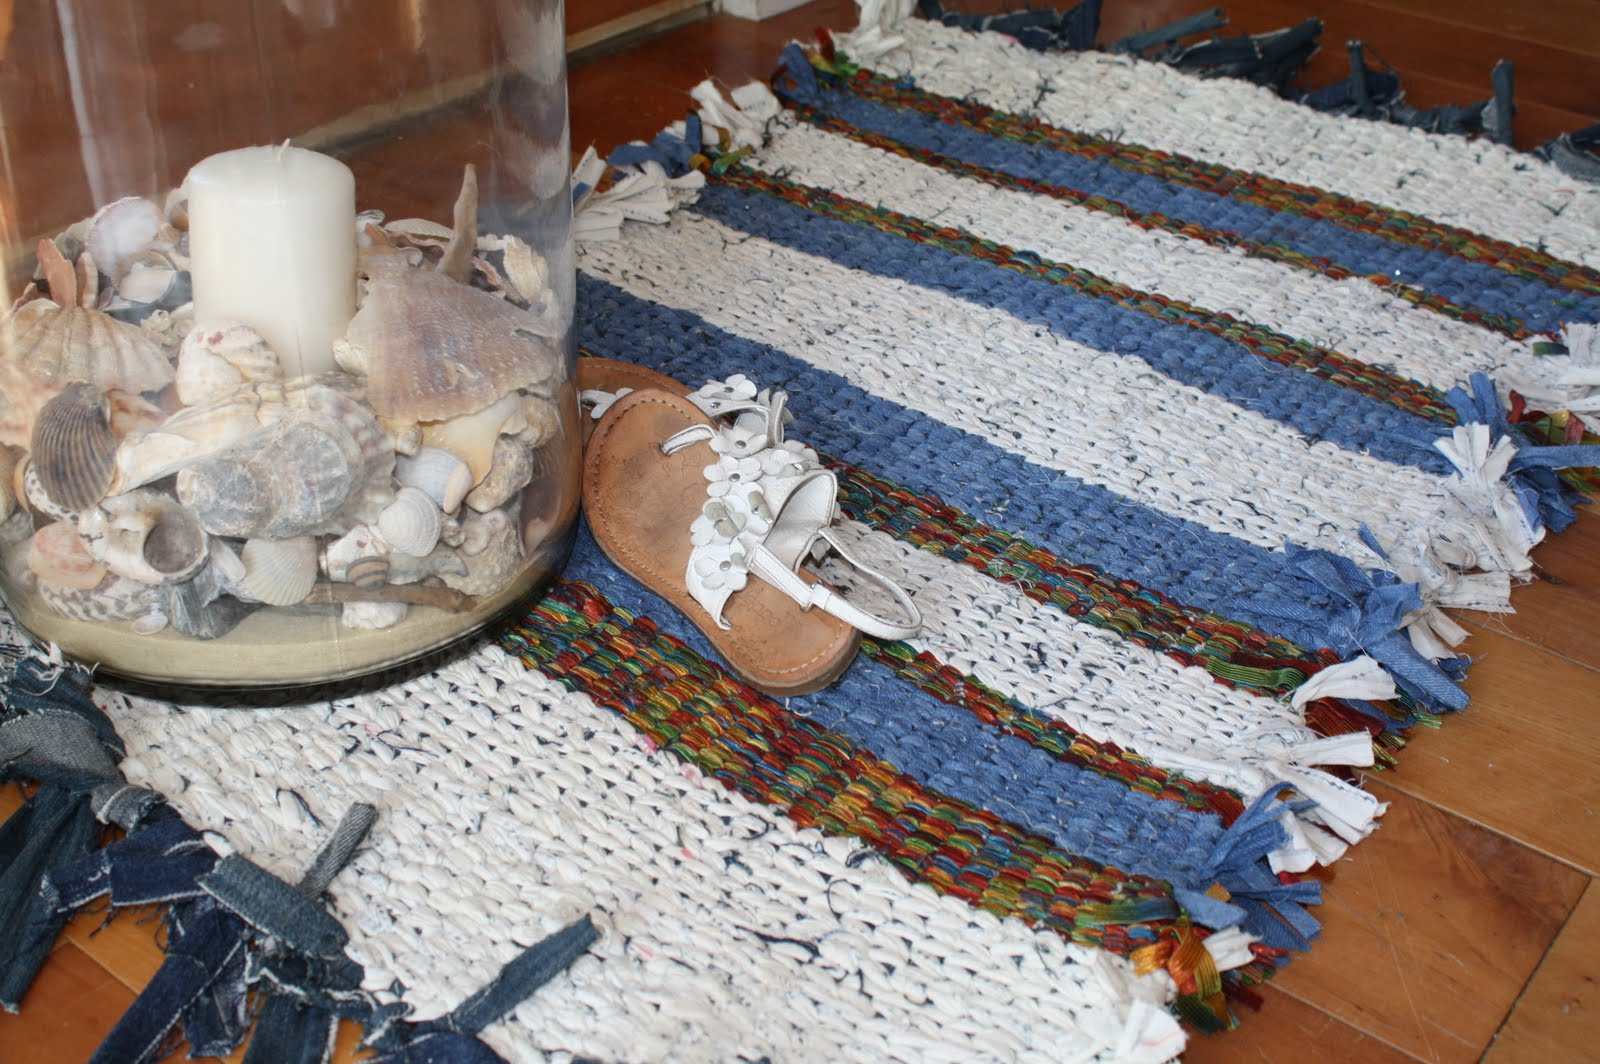 Twined Rag Rugs: Tradition in the Making - Bobbie Irwin - Google Books